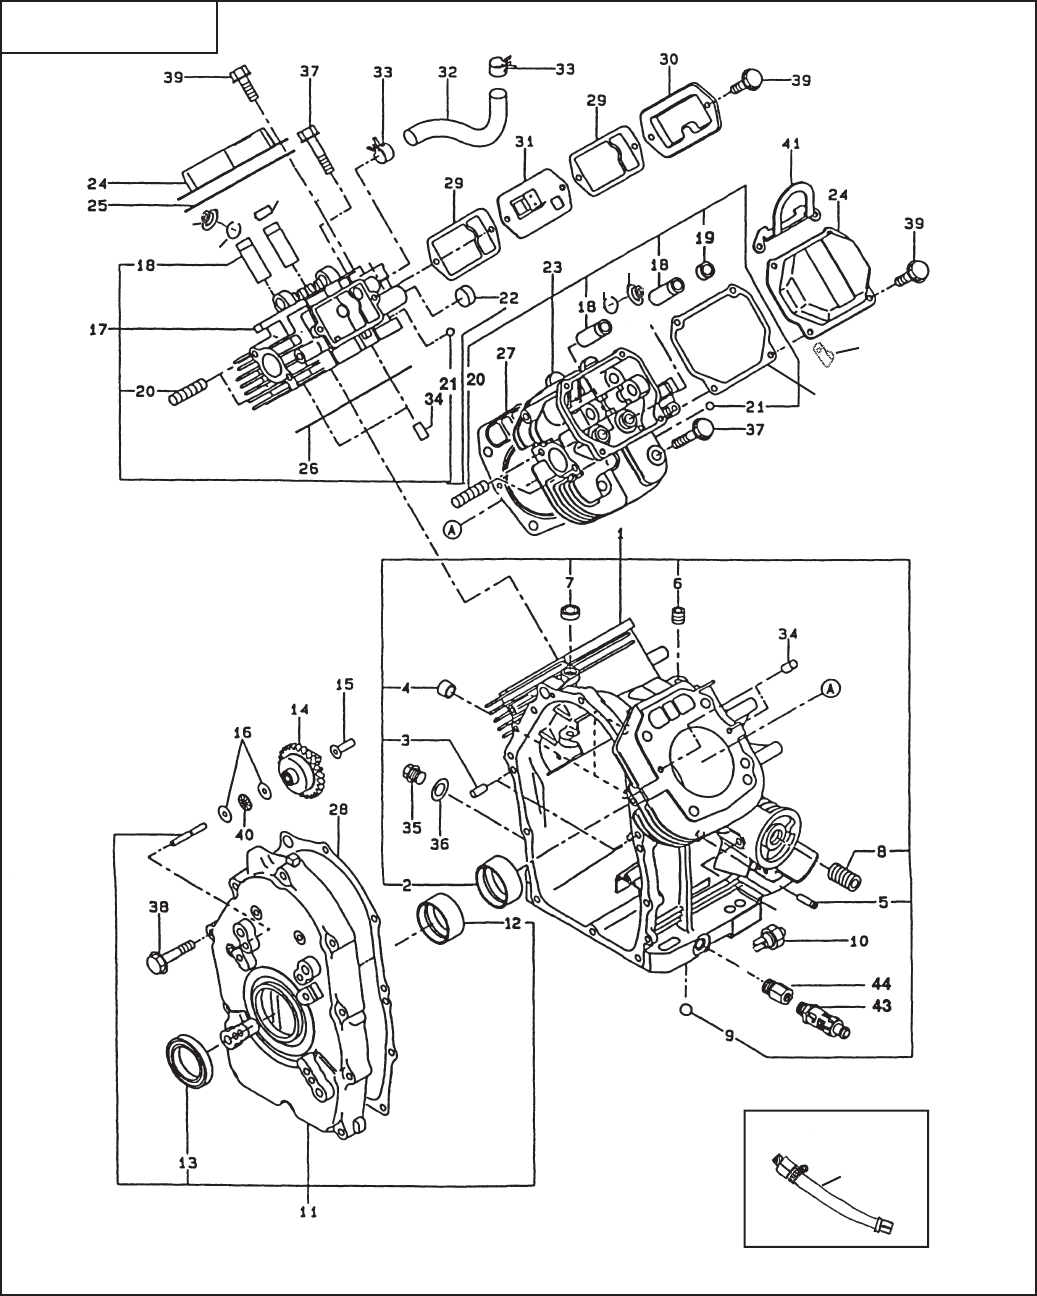 OHV220 Miller W FE Rev 0905 EH64 Welder Parts Manual